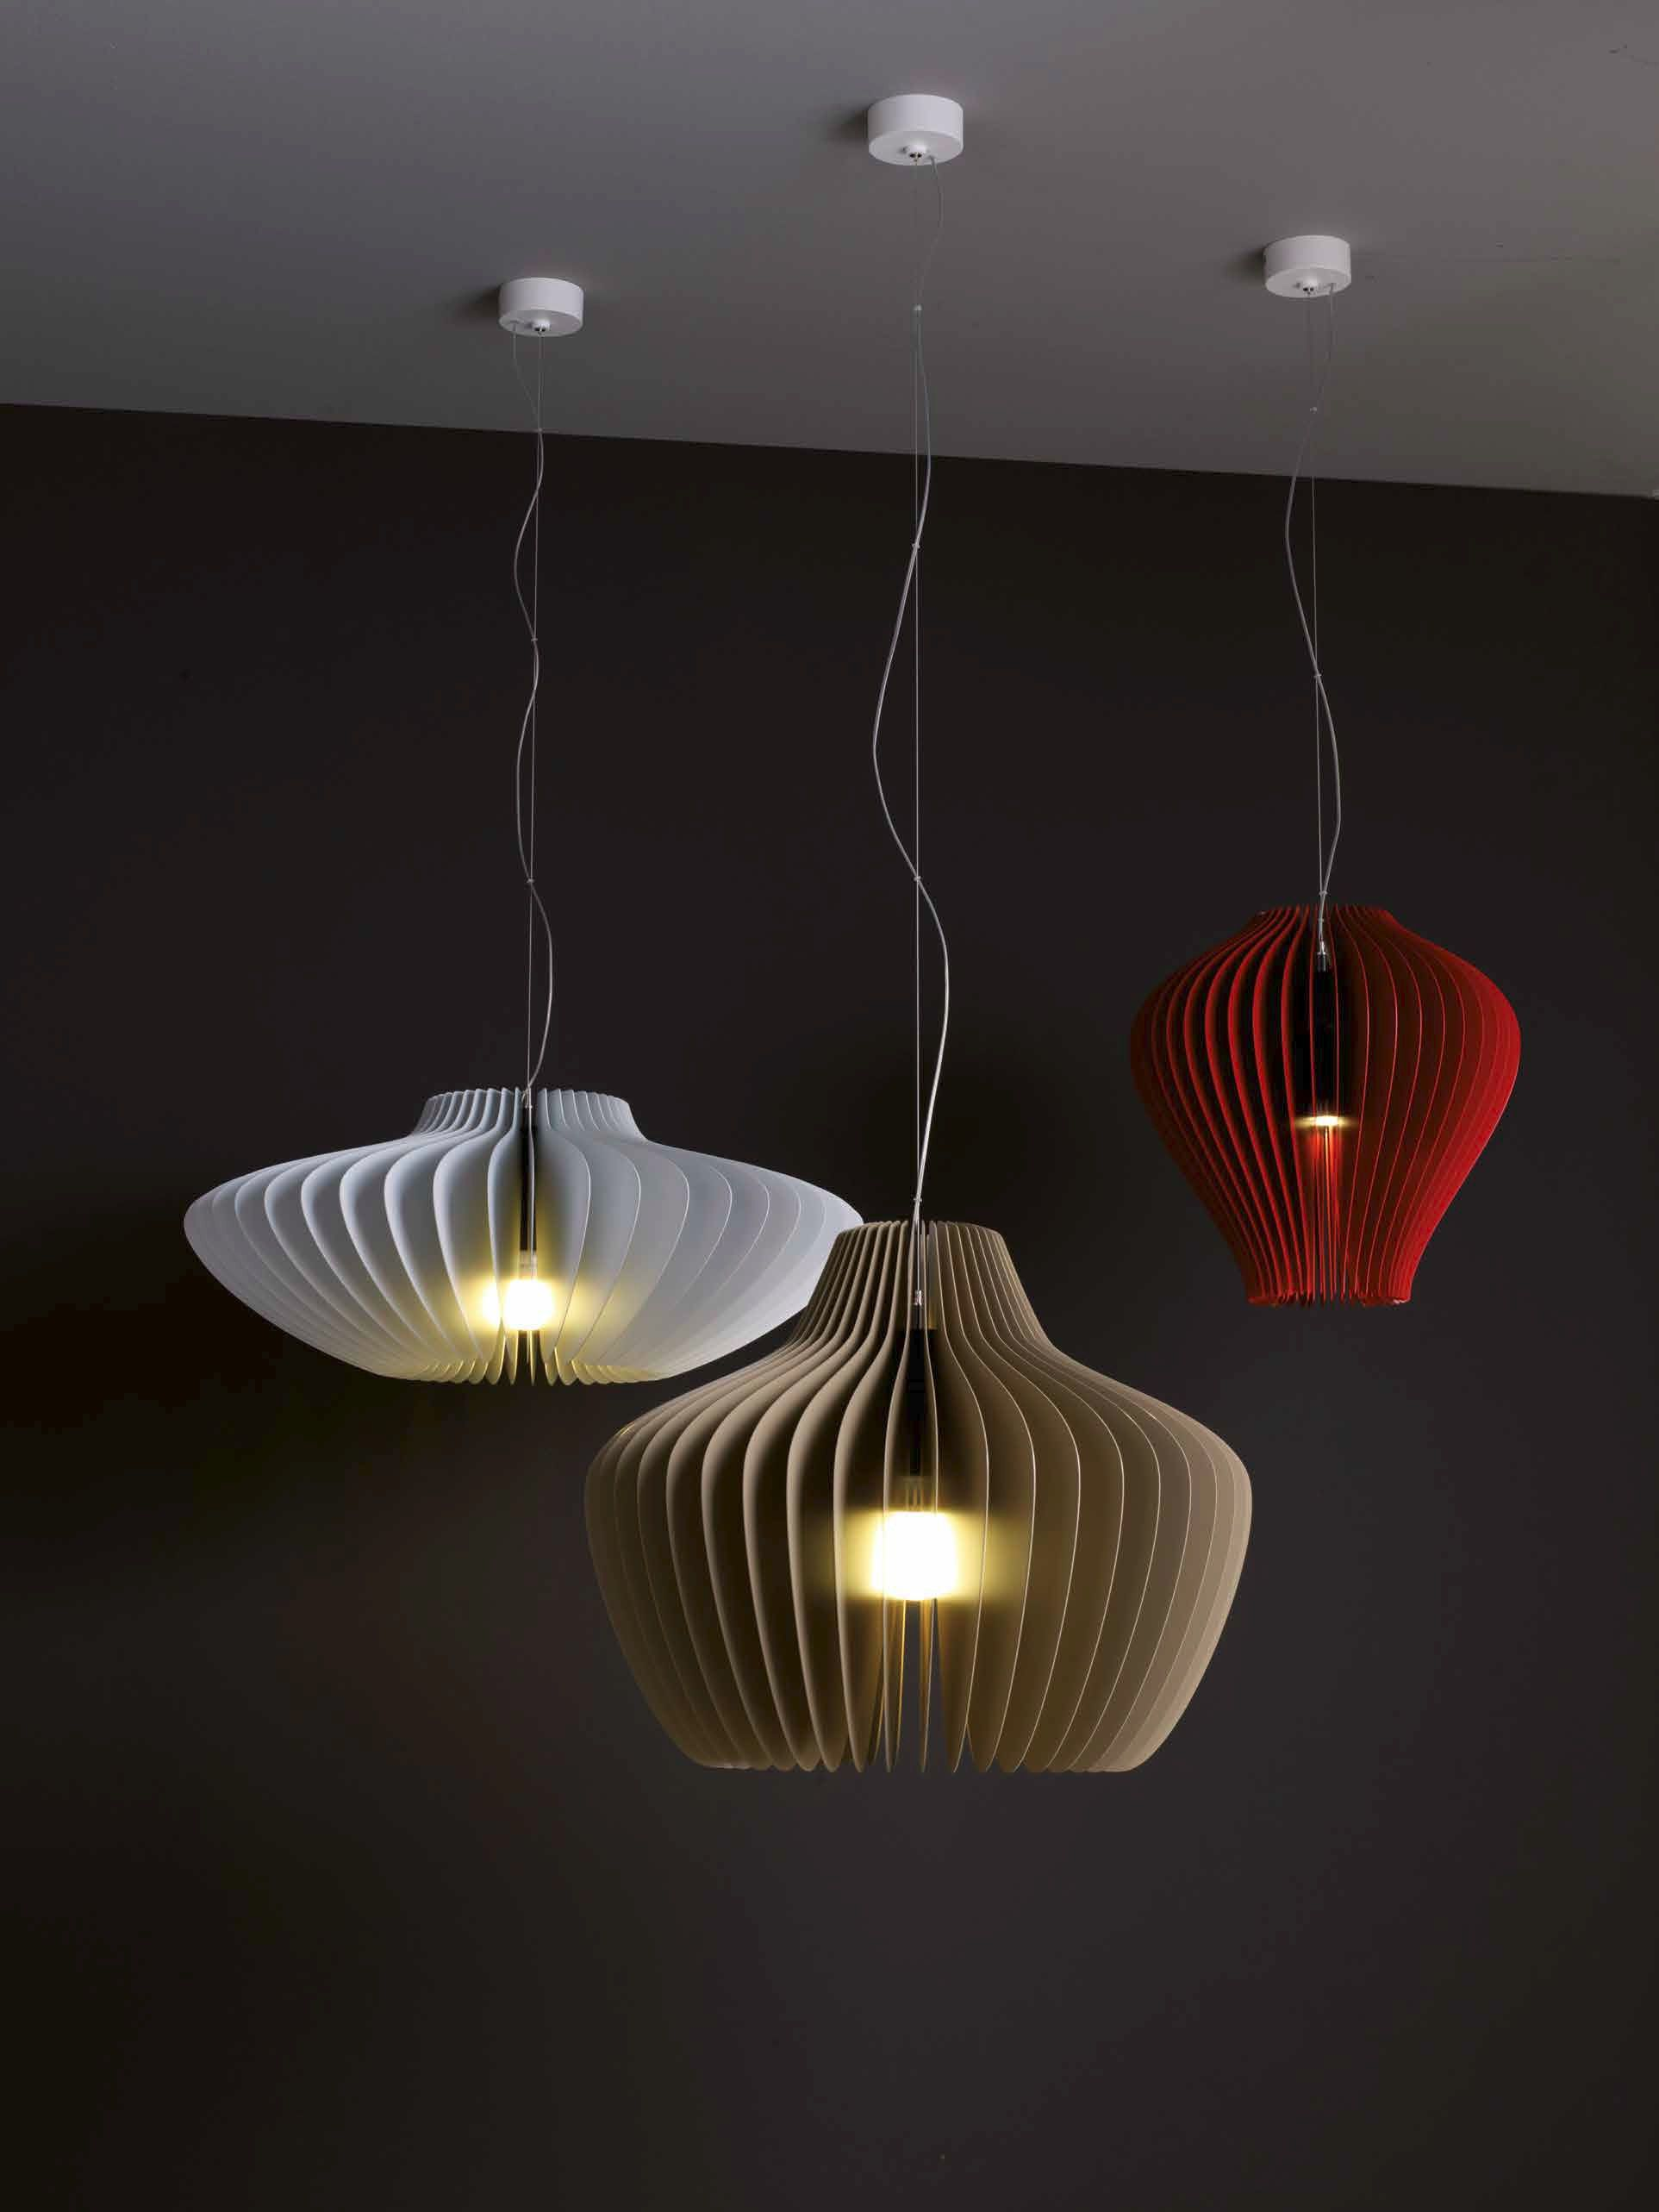 Lamella fragola 230v pendant light fittings by molto luce lamella fragola 230v pendant light fittings by molto luce get molto aloadofball Images